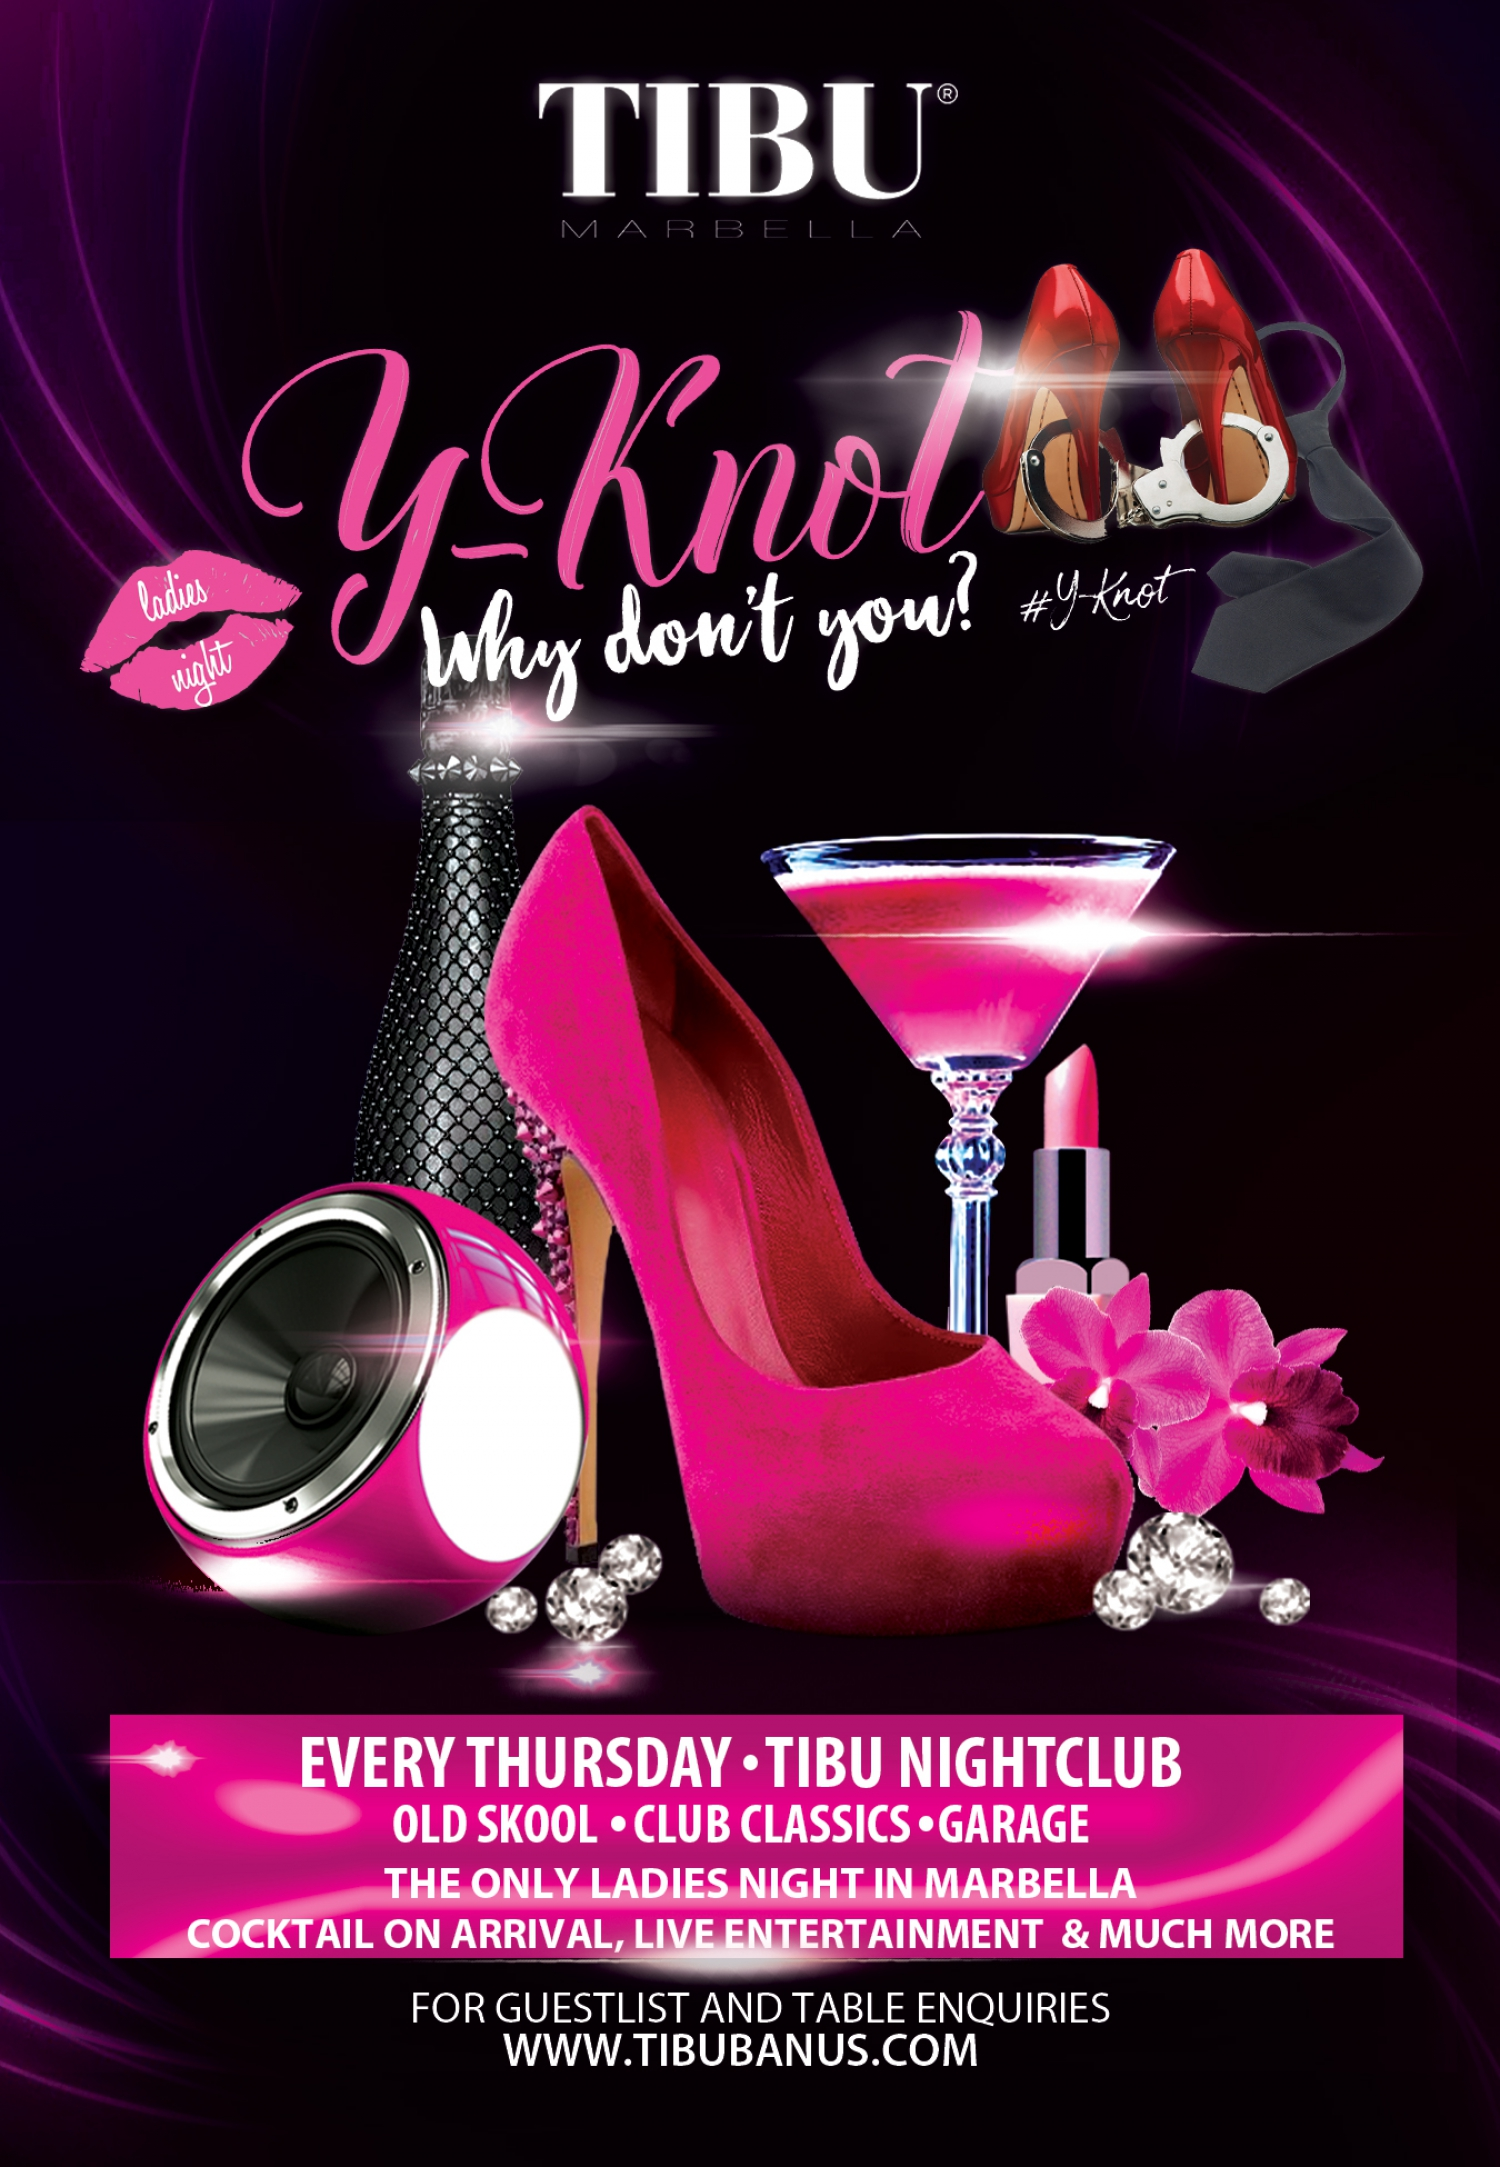 YKnot Ladies Night at Tibu